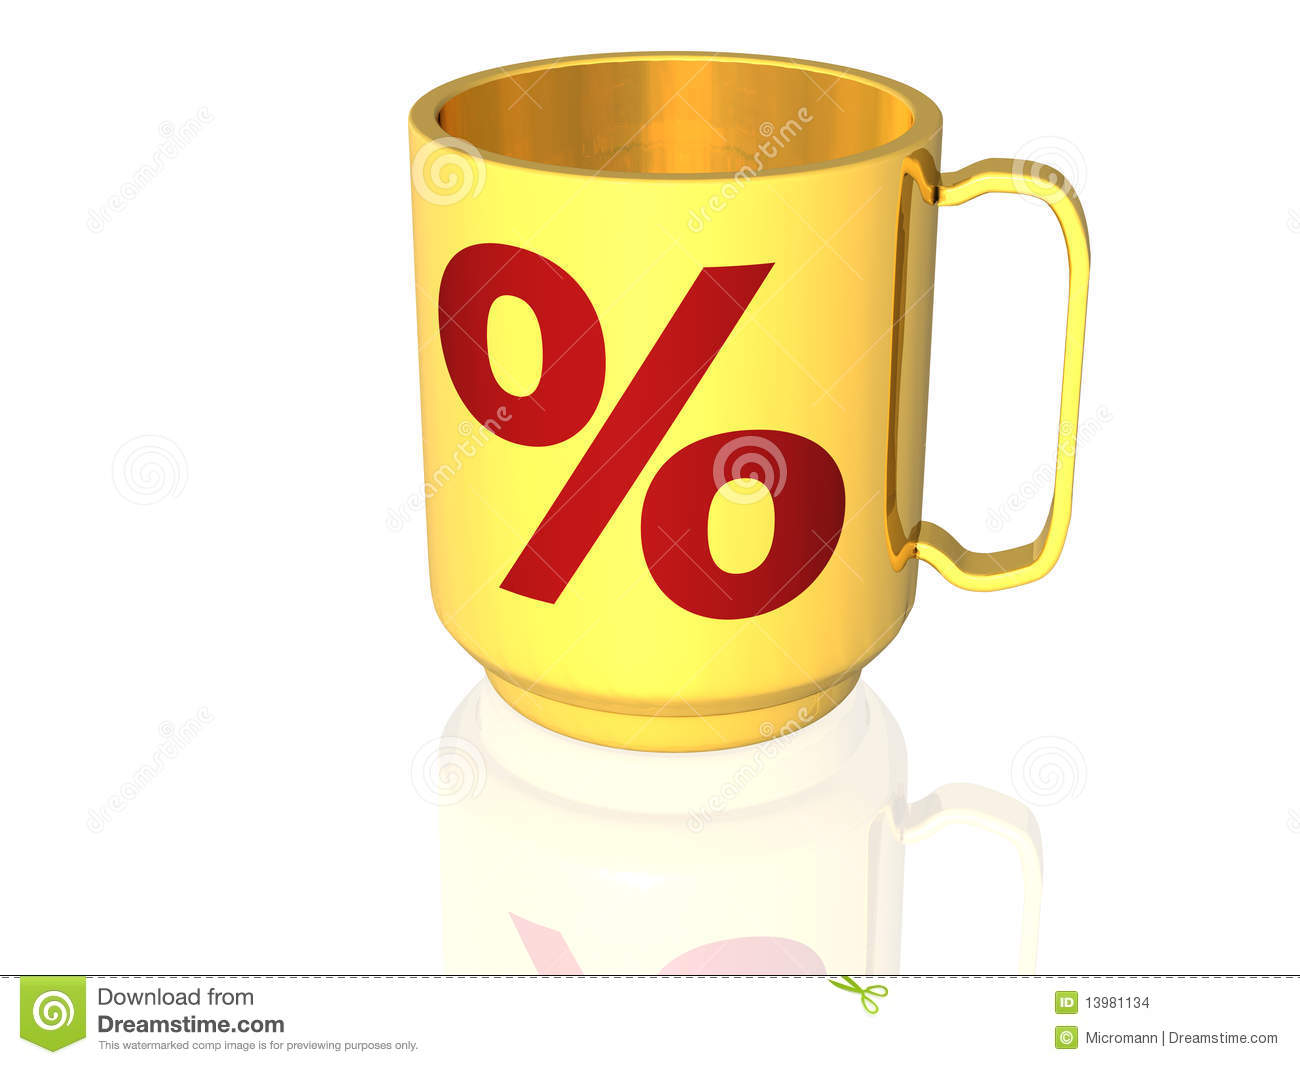 Cup with percentage signs - 3D